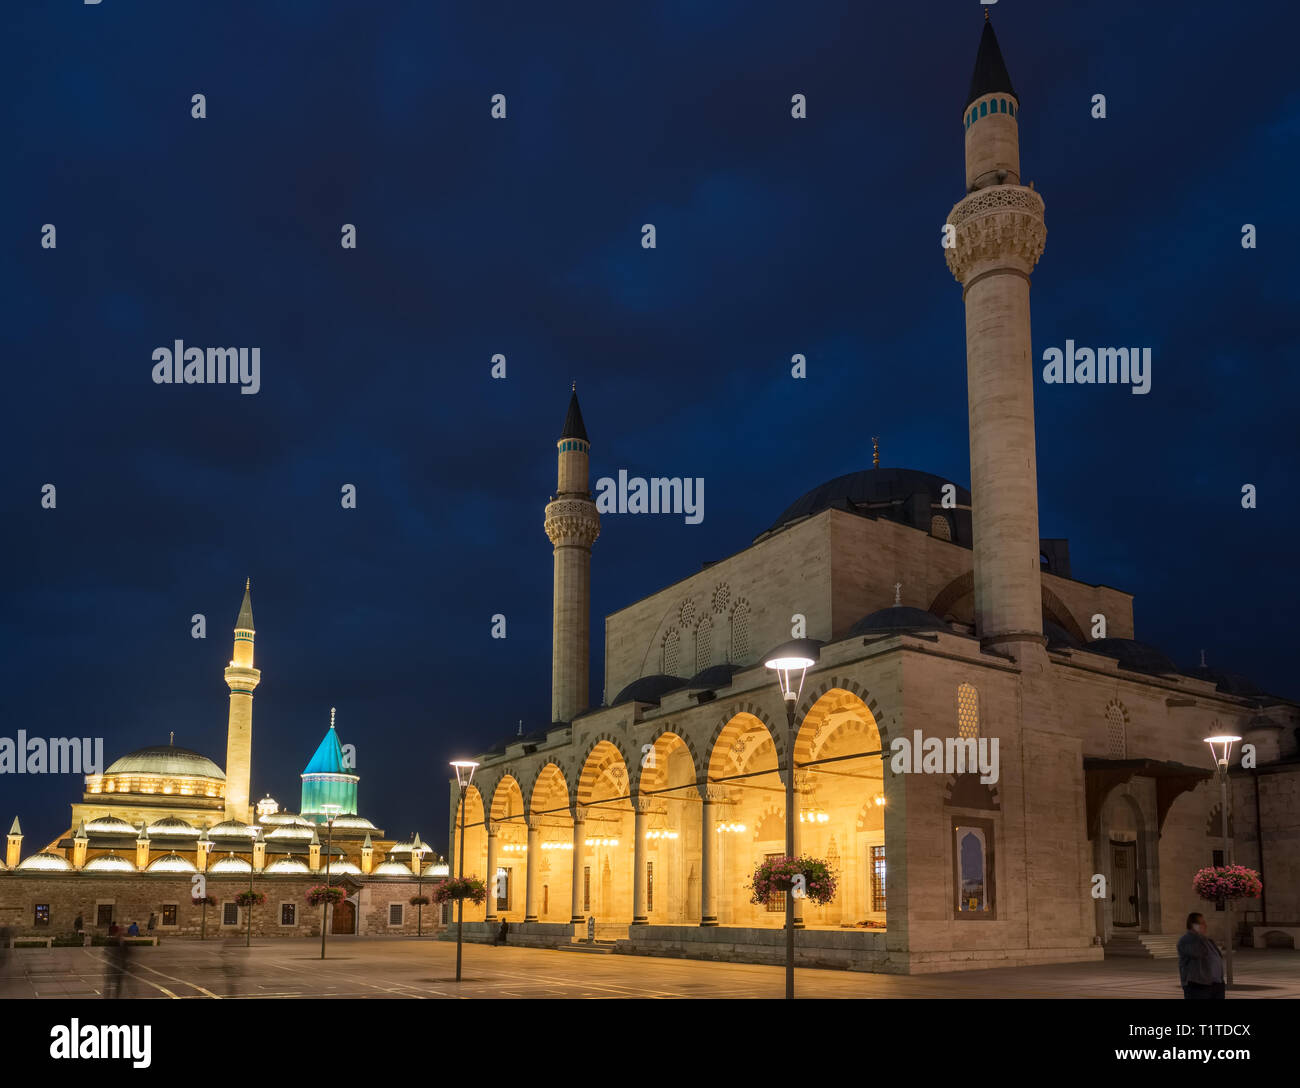 The central square of the old town of Konya at night, Turkey - Stock Image